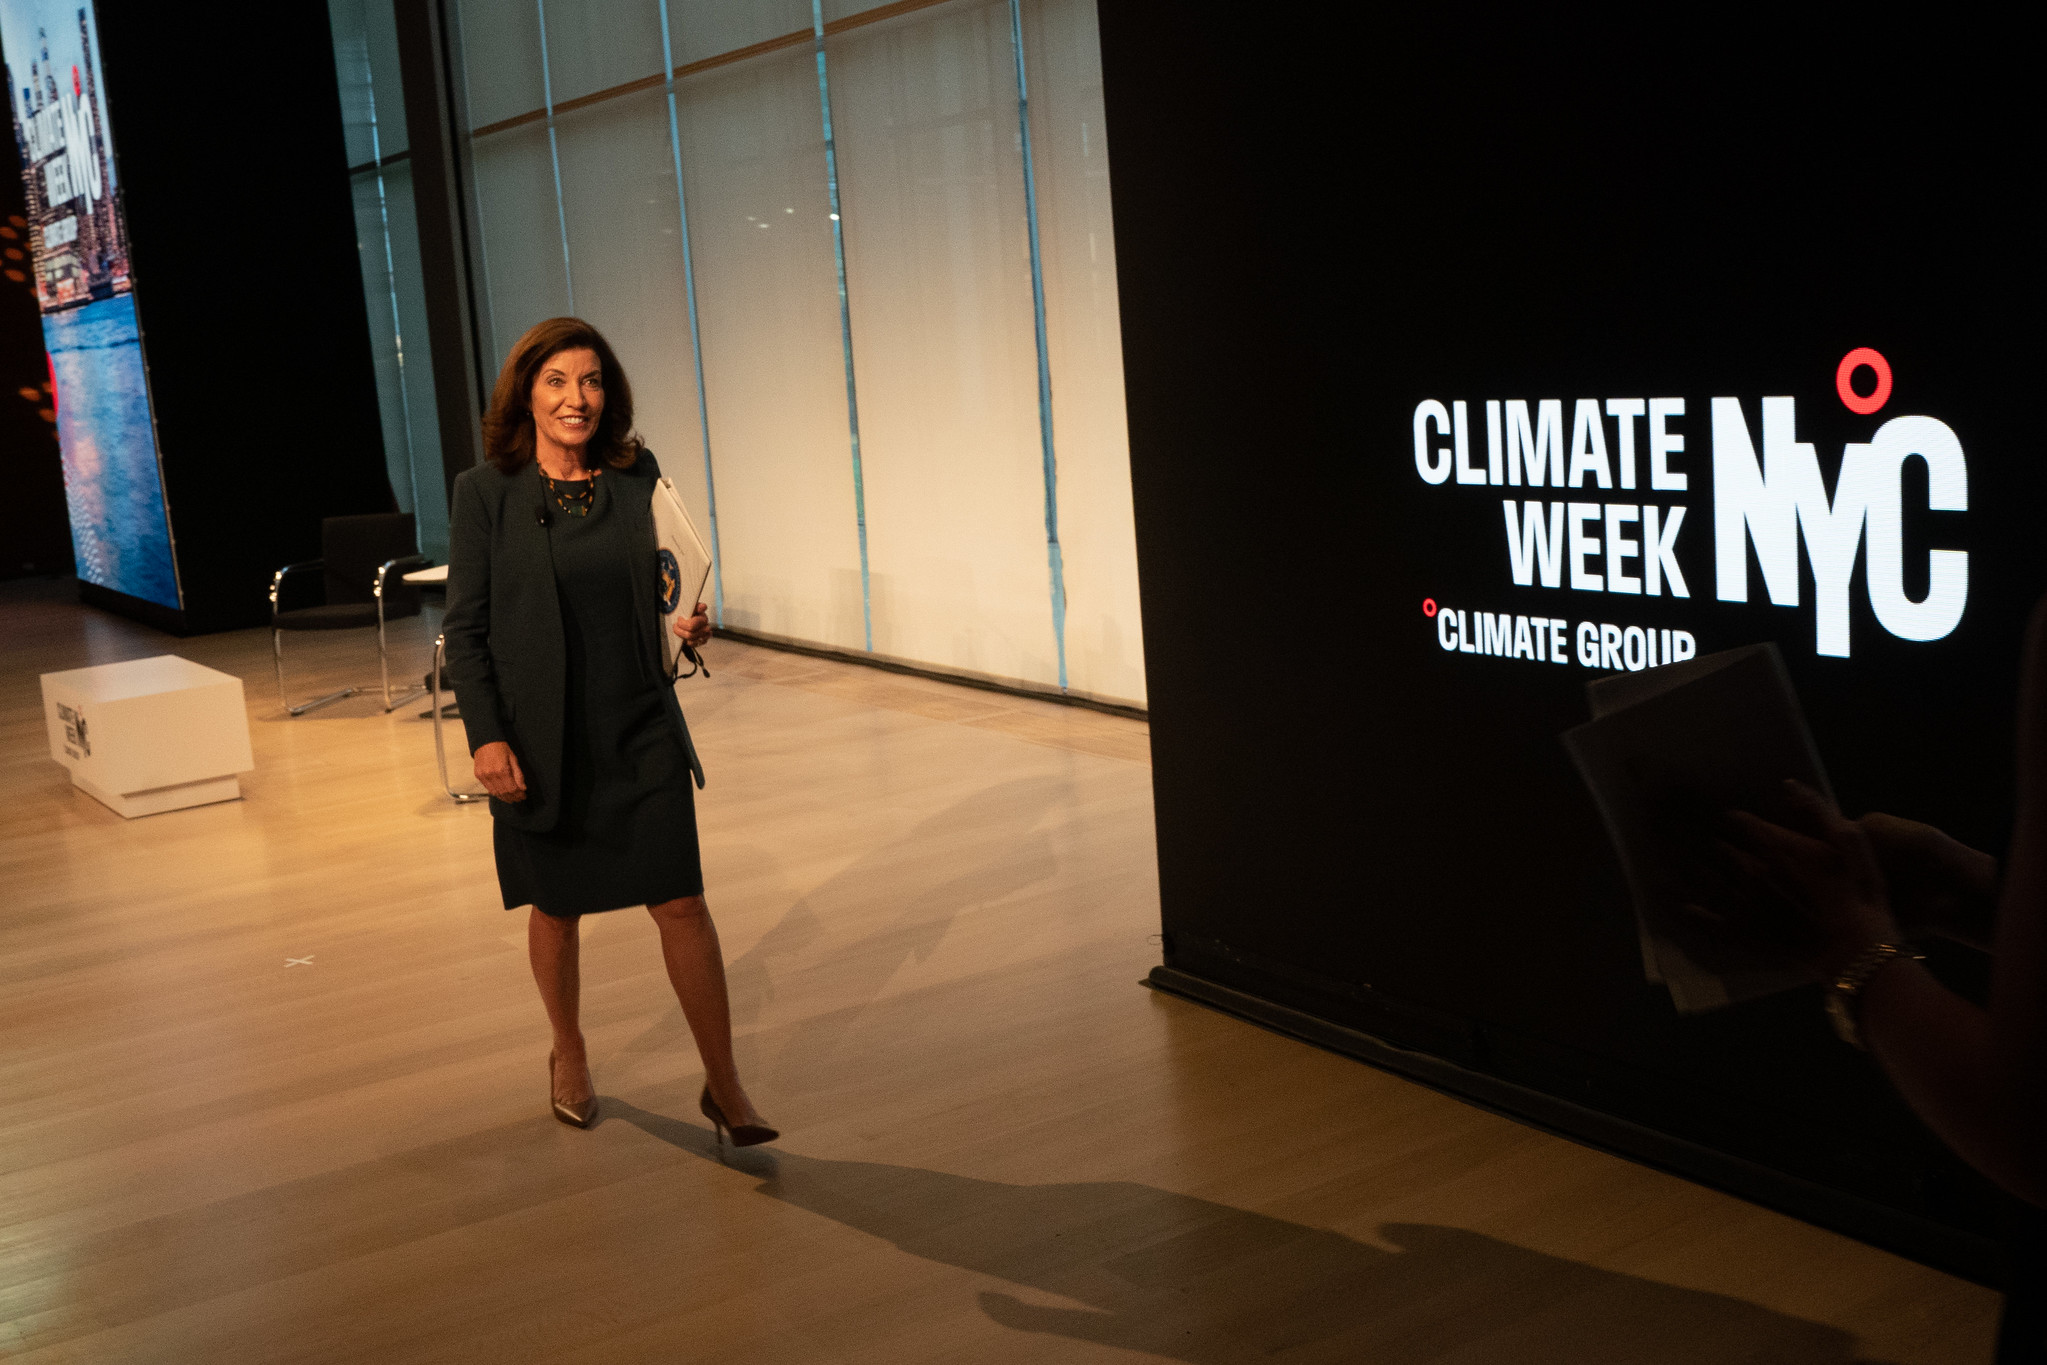 Governor Kathy Hochul after delivering remarks at the Climate Week opening ceremony in New York City.